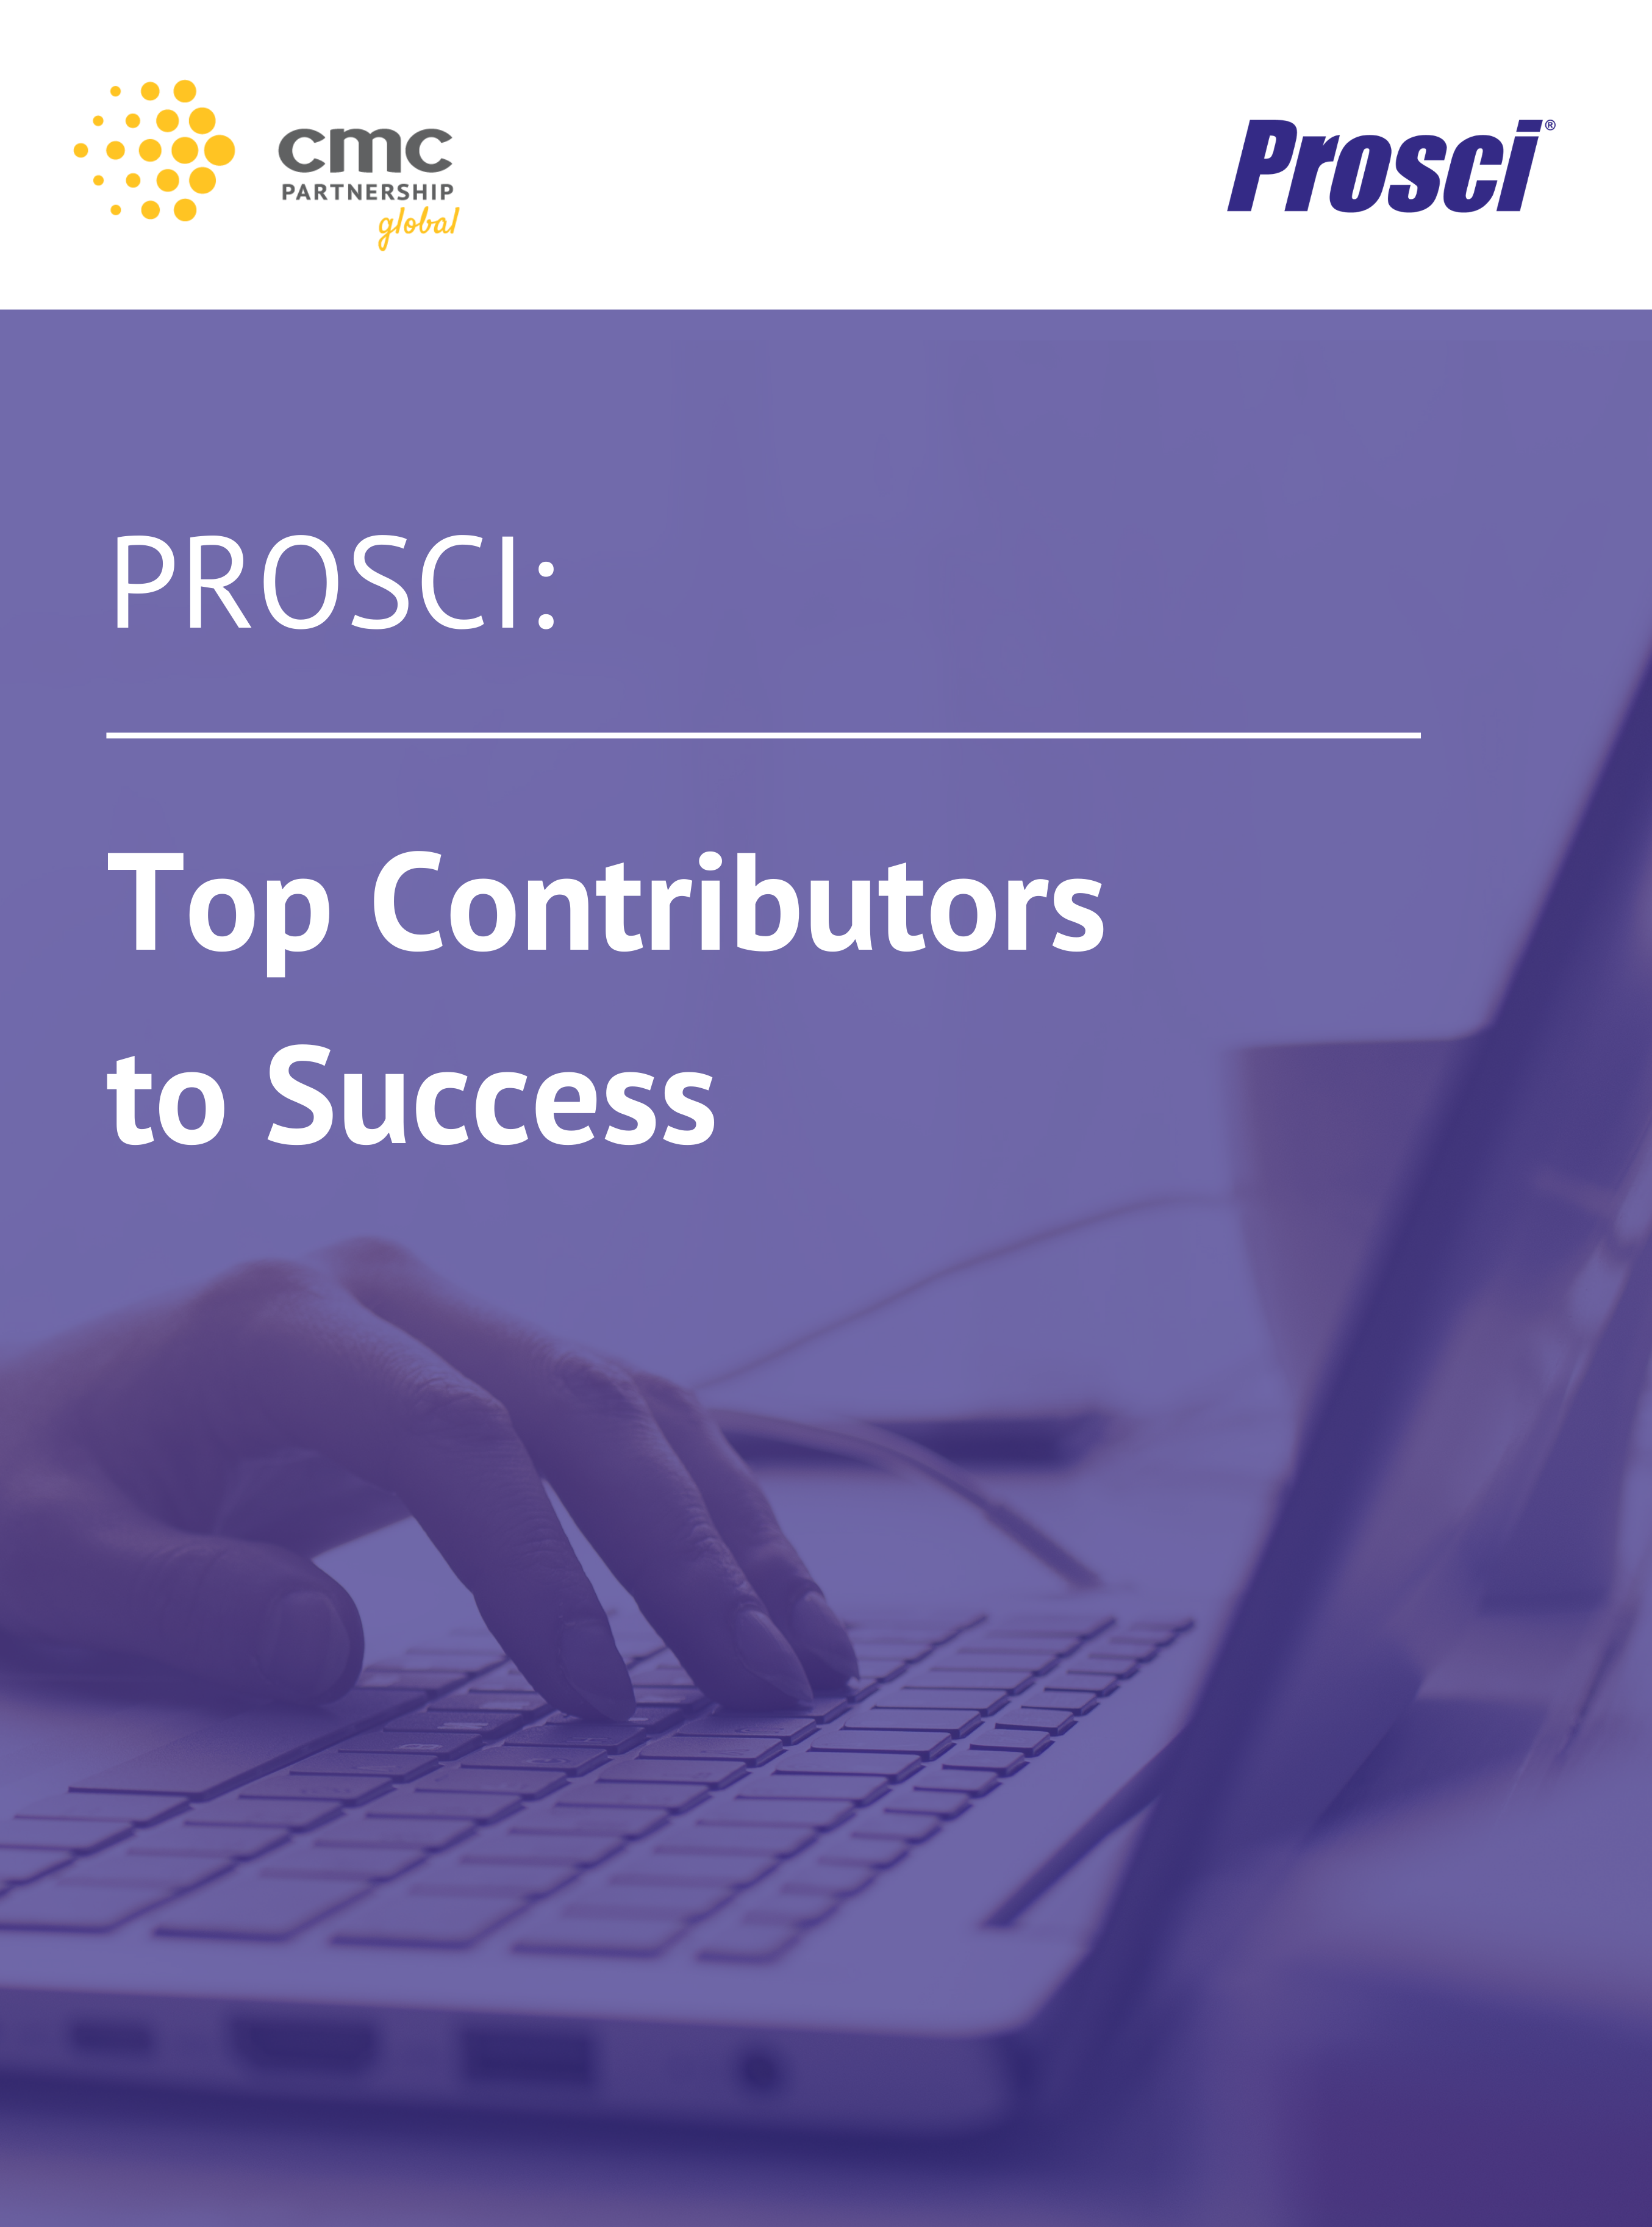 Top Contributors to Success-1